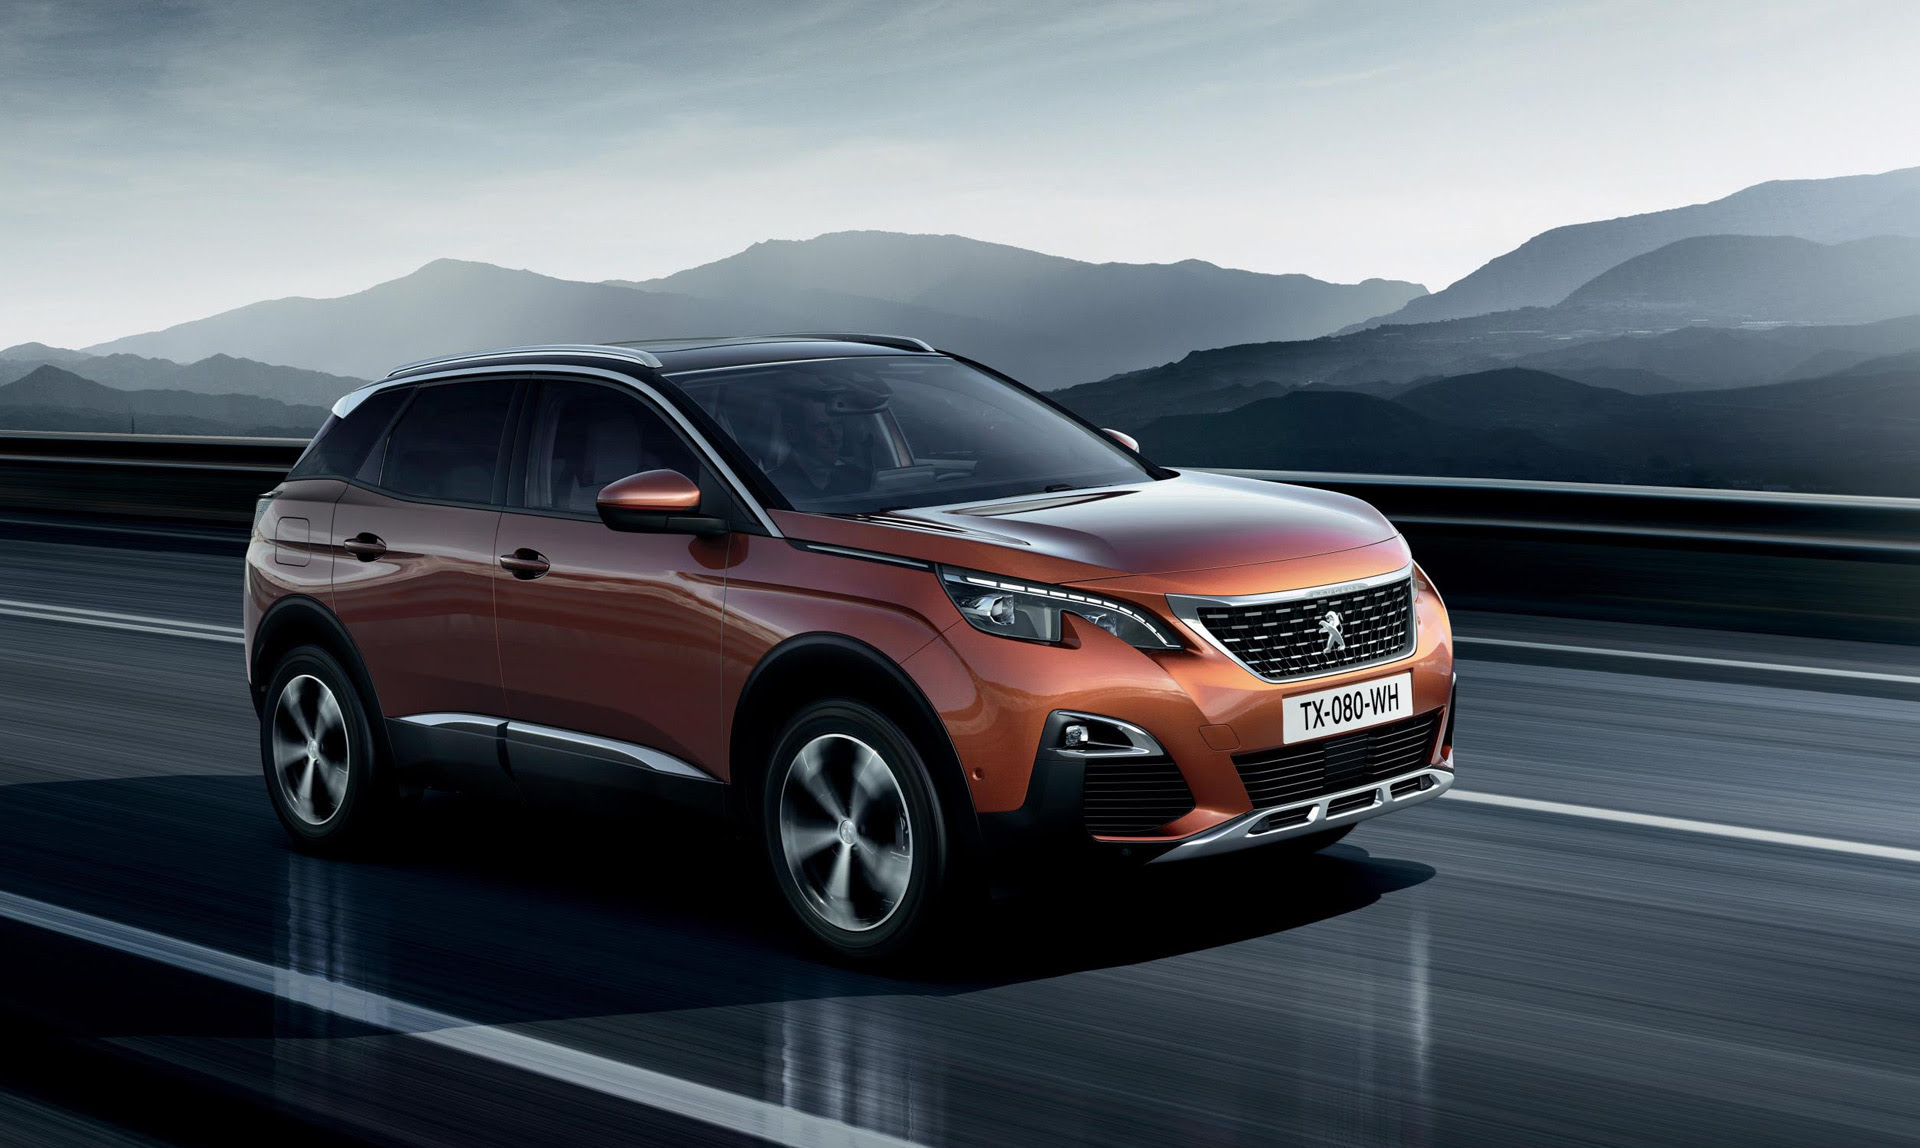 2017 Peugeot 3008 revealed ahead of 2016 Paris Auto Show